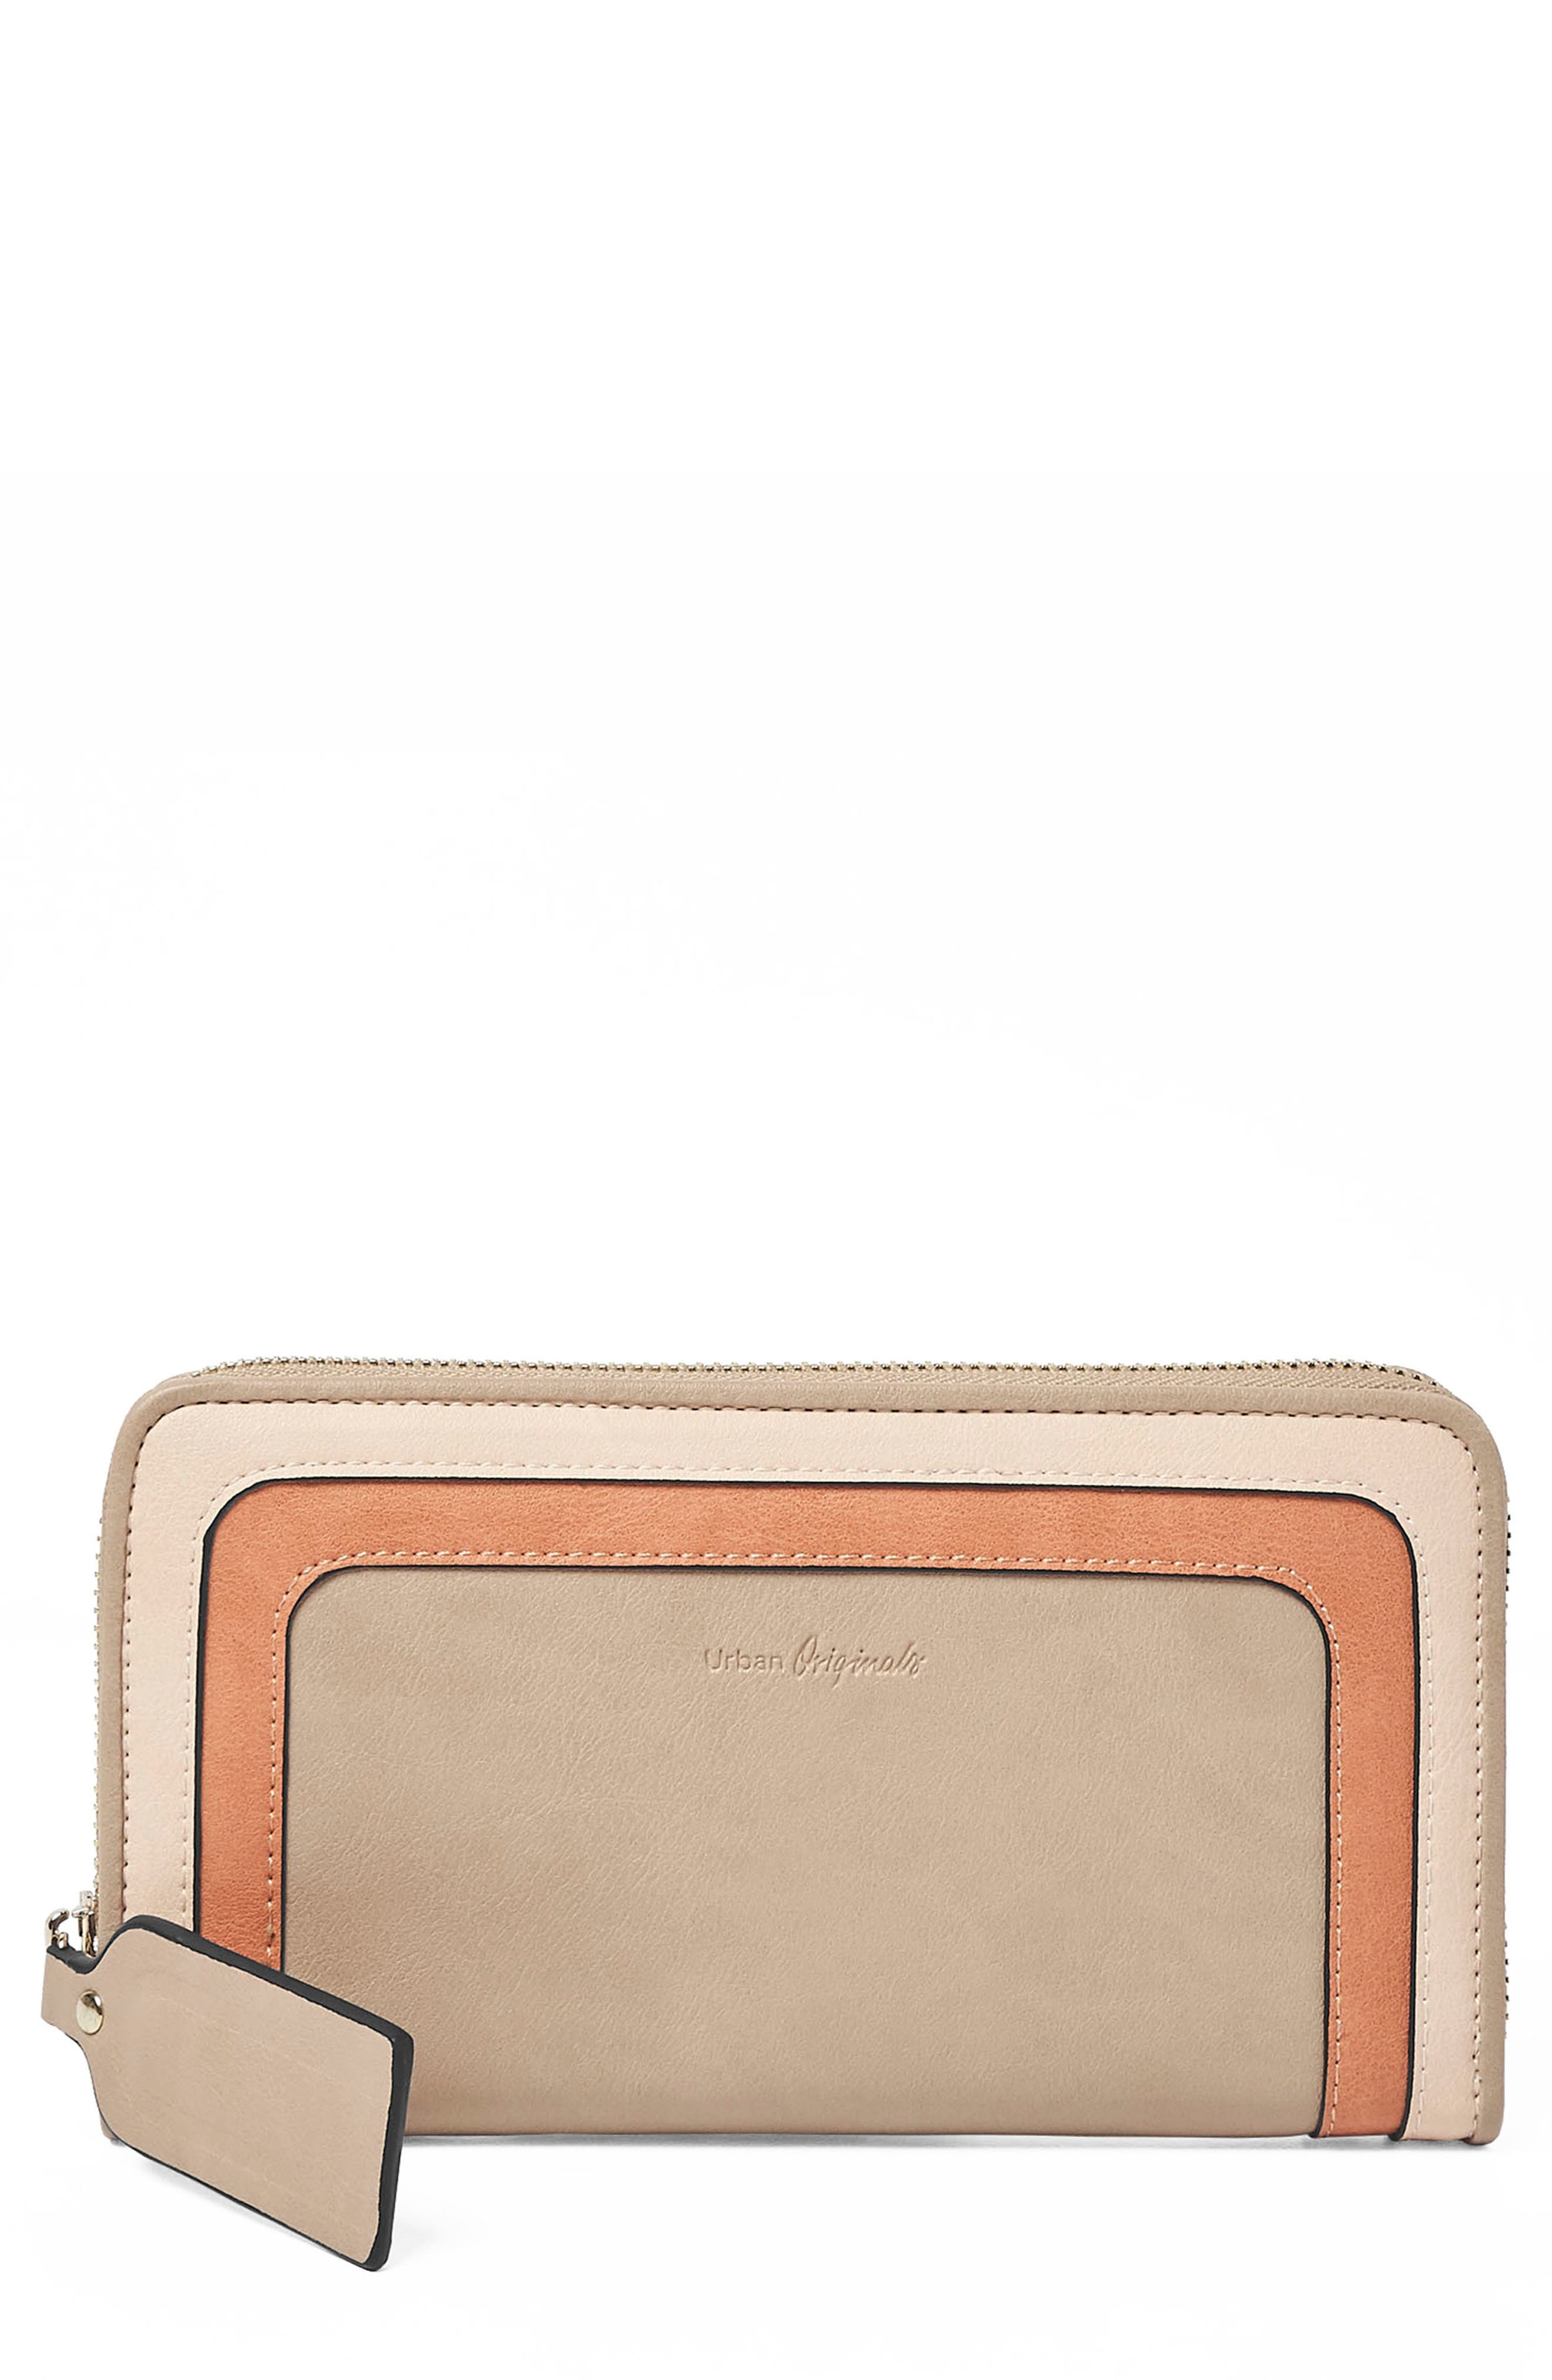 Drama Queen Faux Leather Zip Wallet,                             Main thumbnail 1, color,                             Taupe